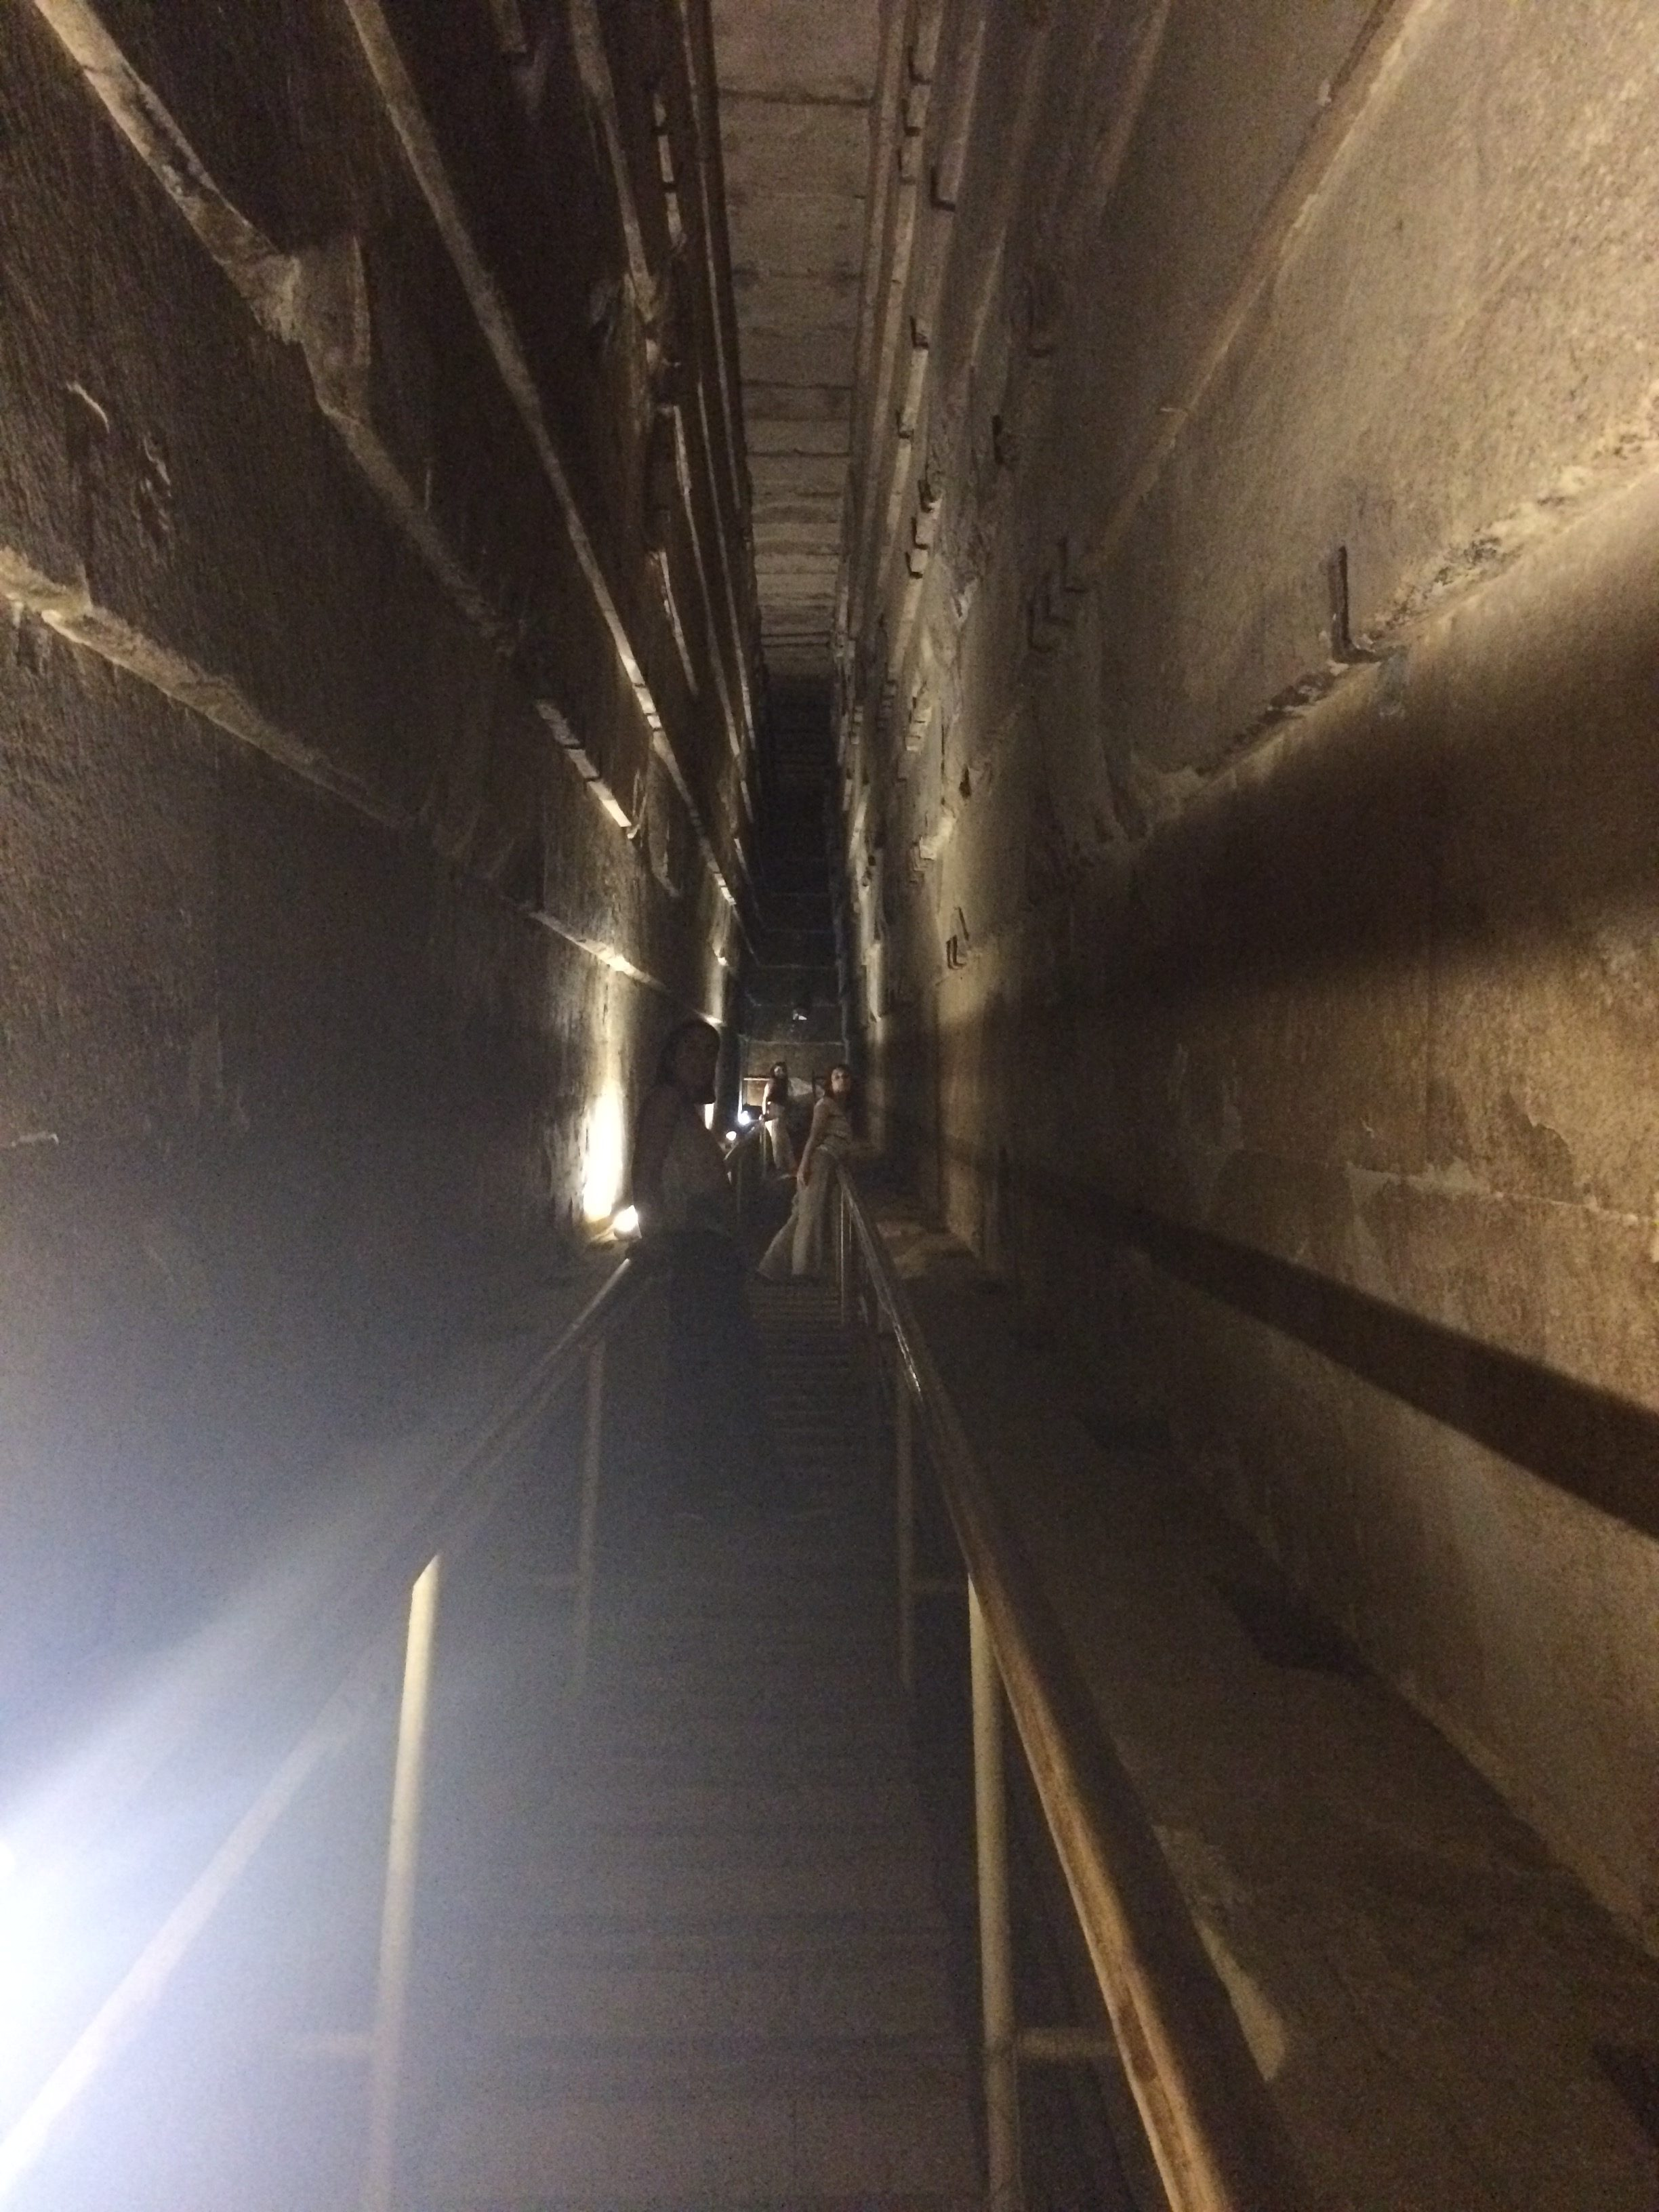 Inside the pyramid